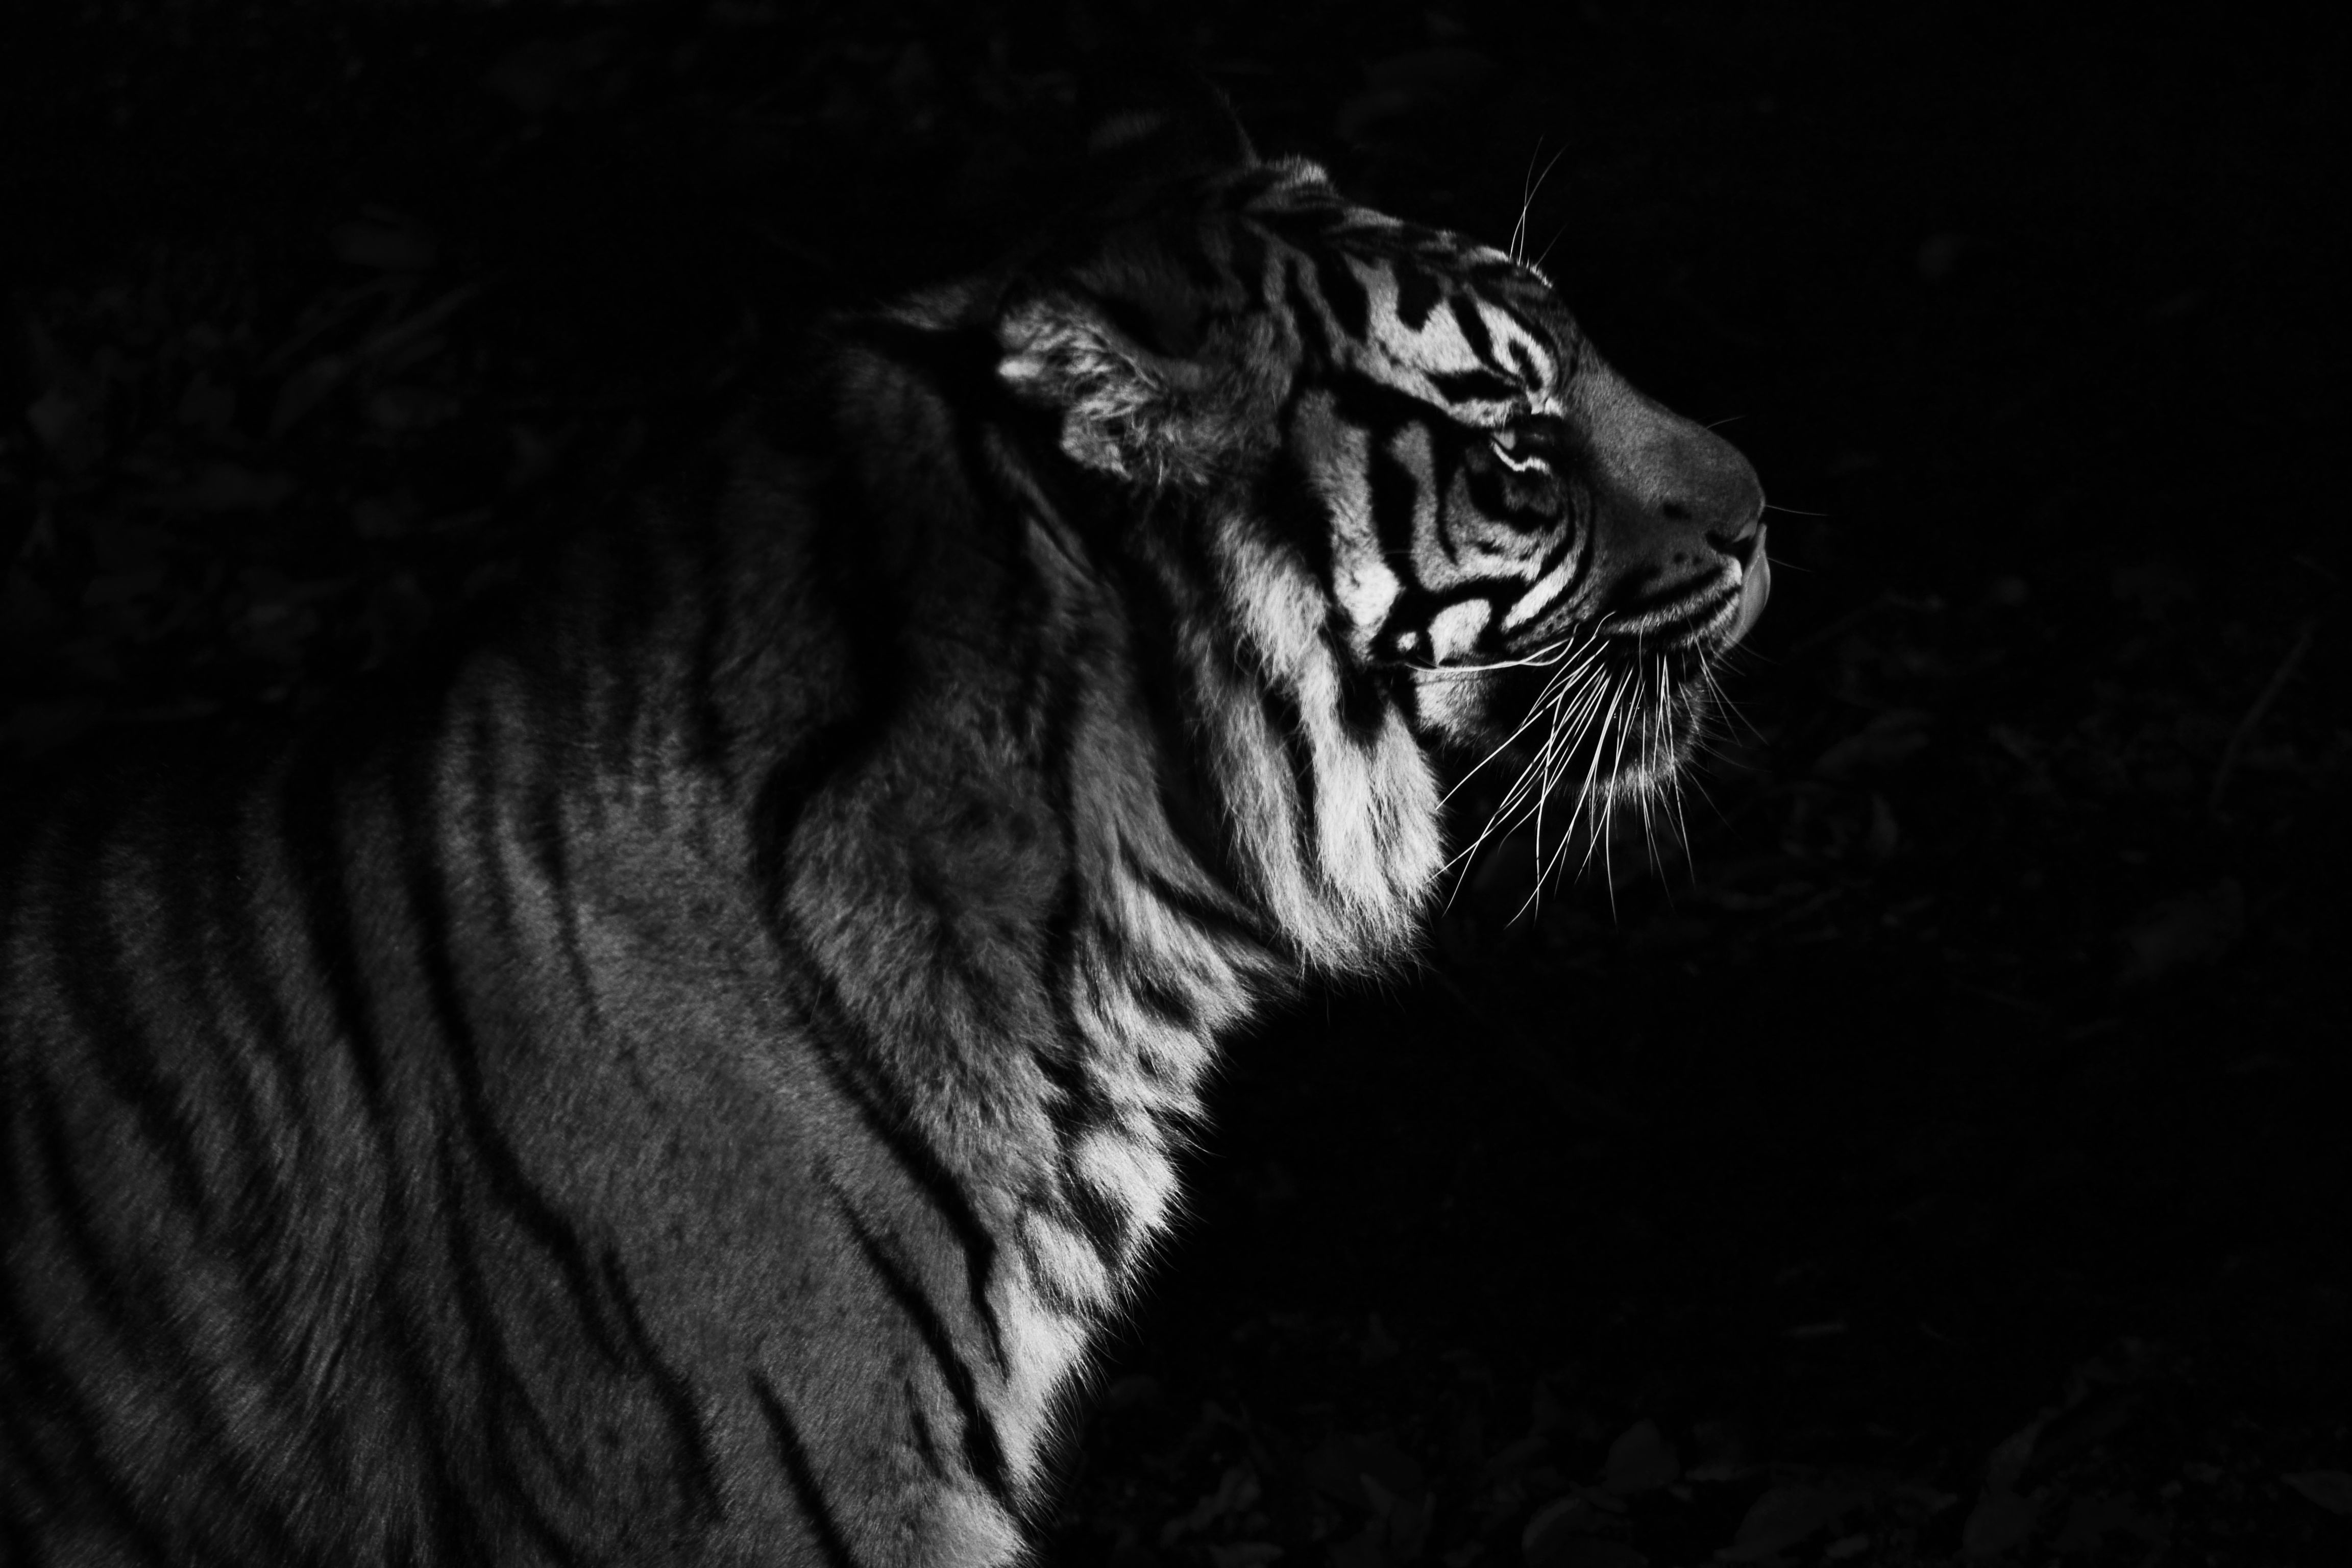 And lord tiger in black and white...